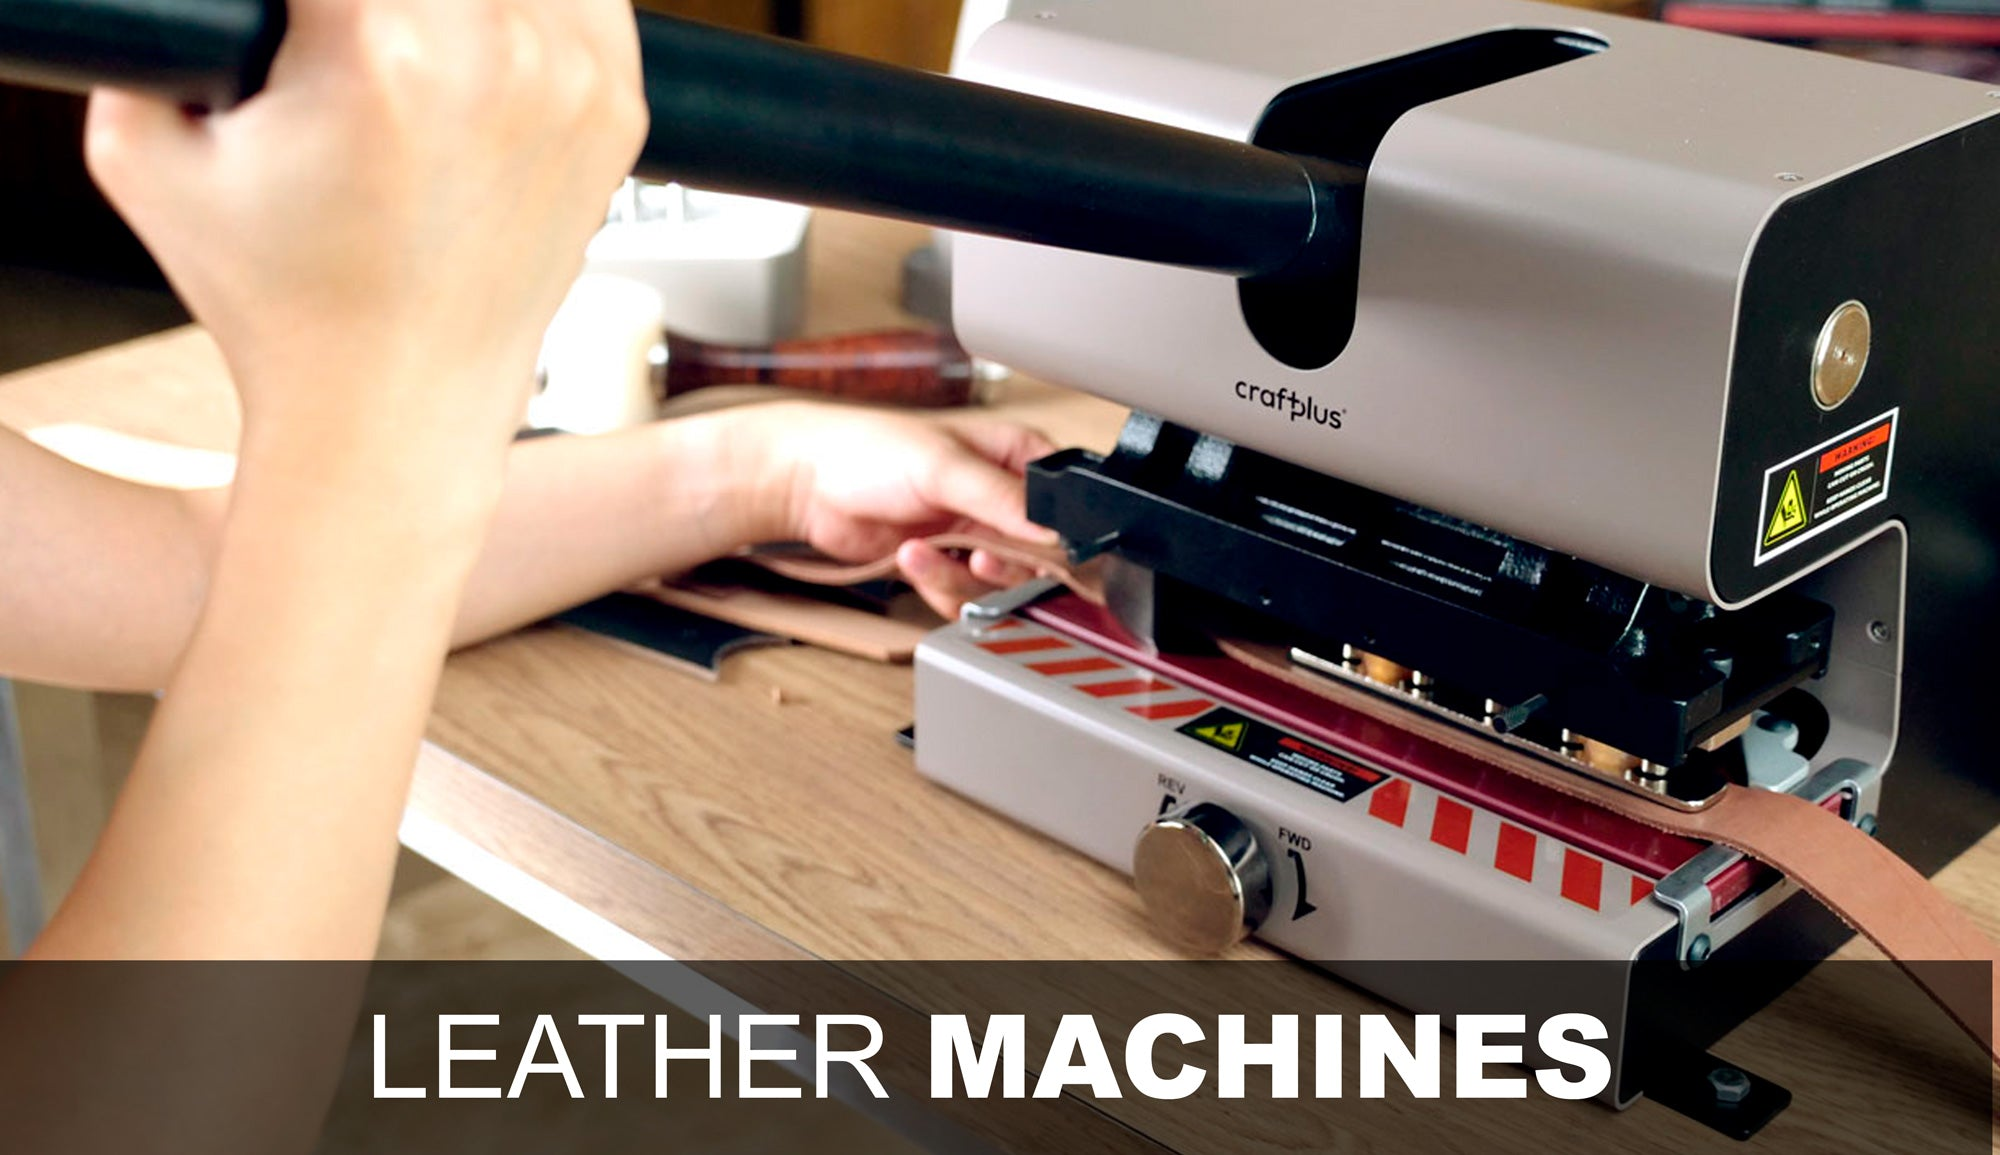 LEATHER MACHINES